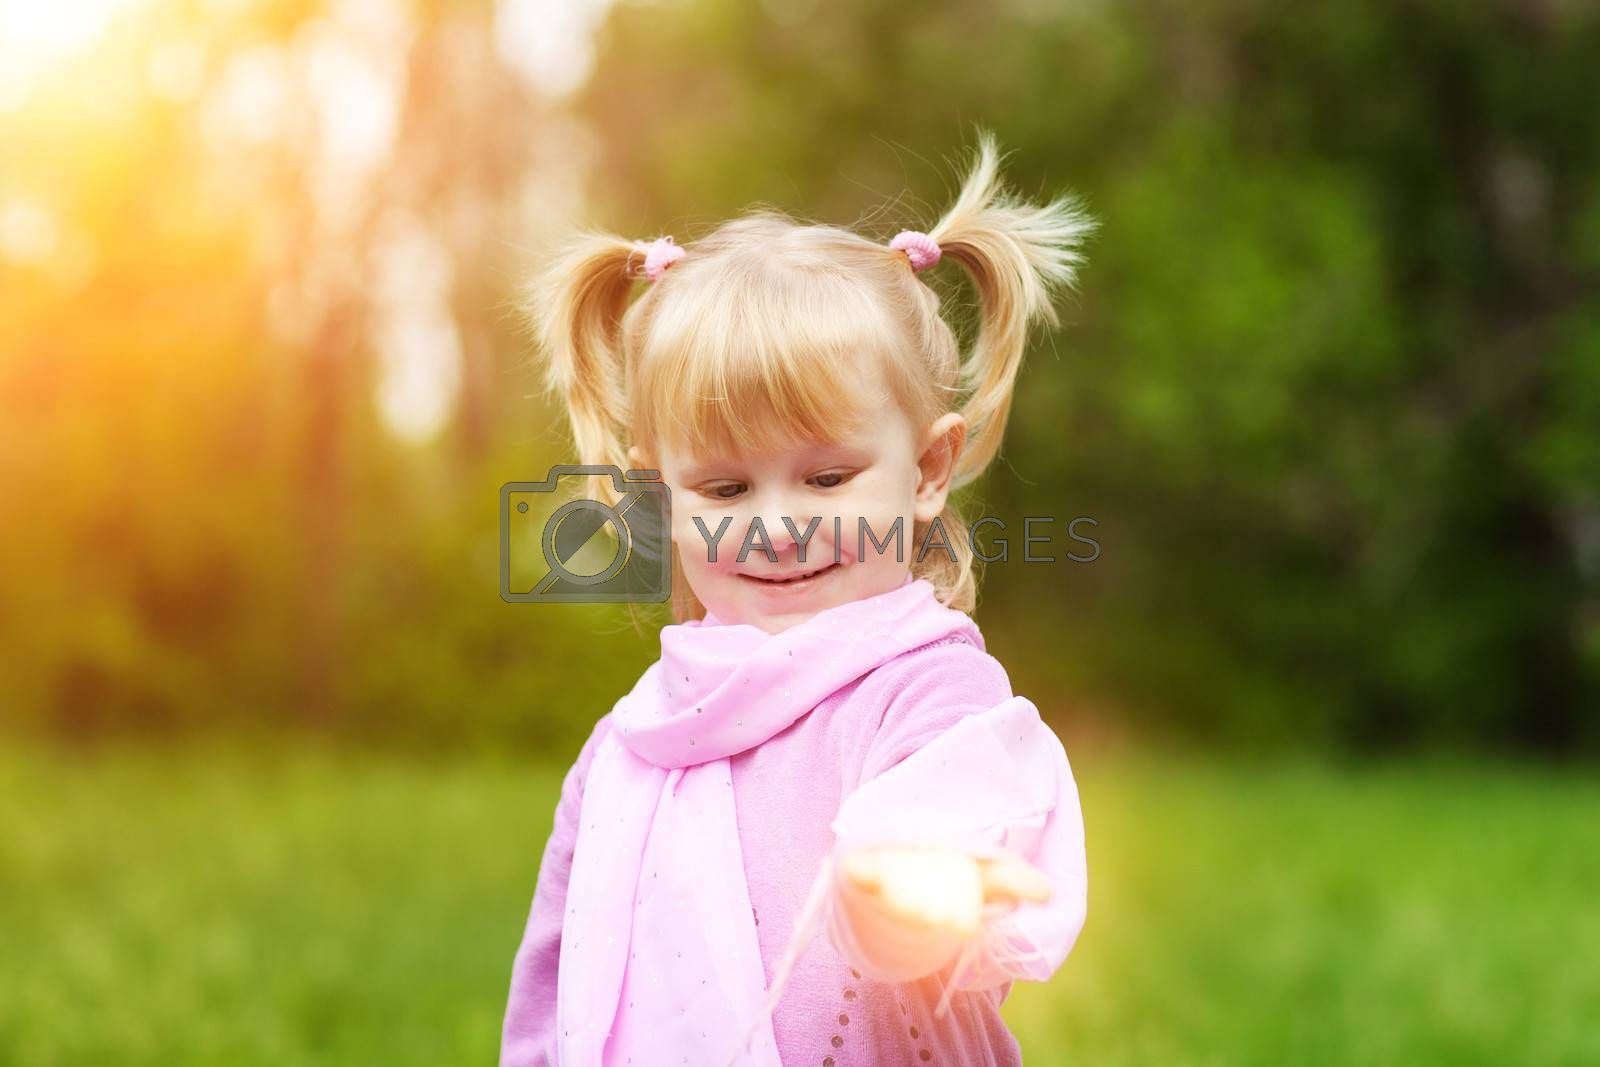 girl with small light in hand